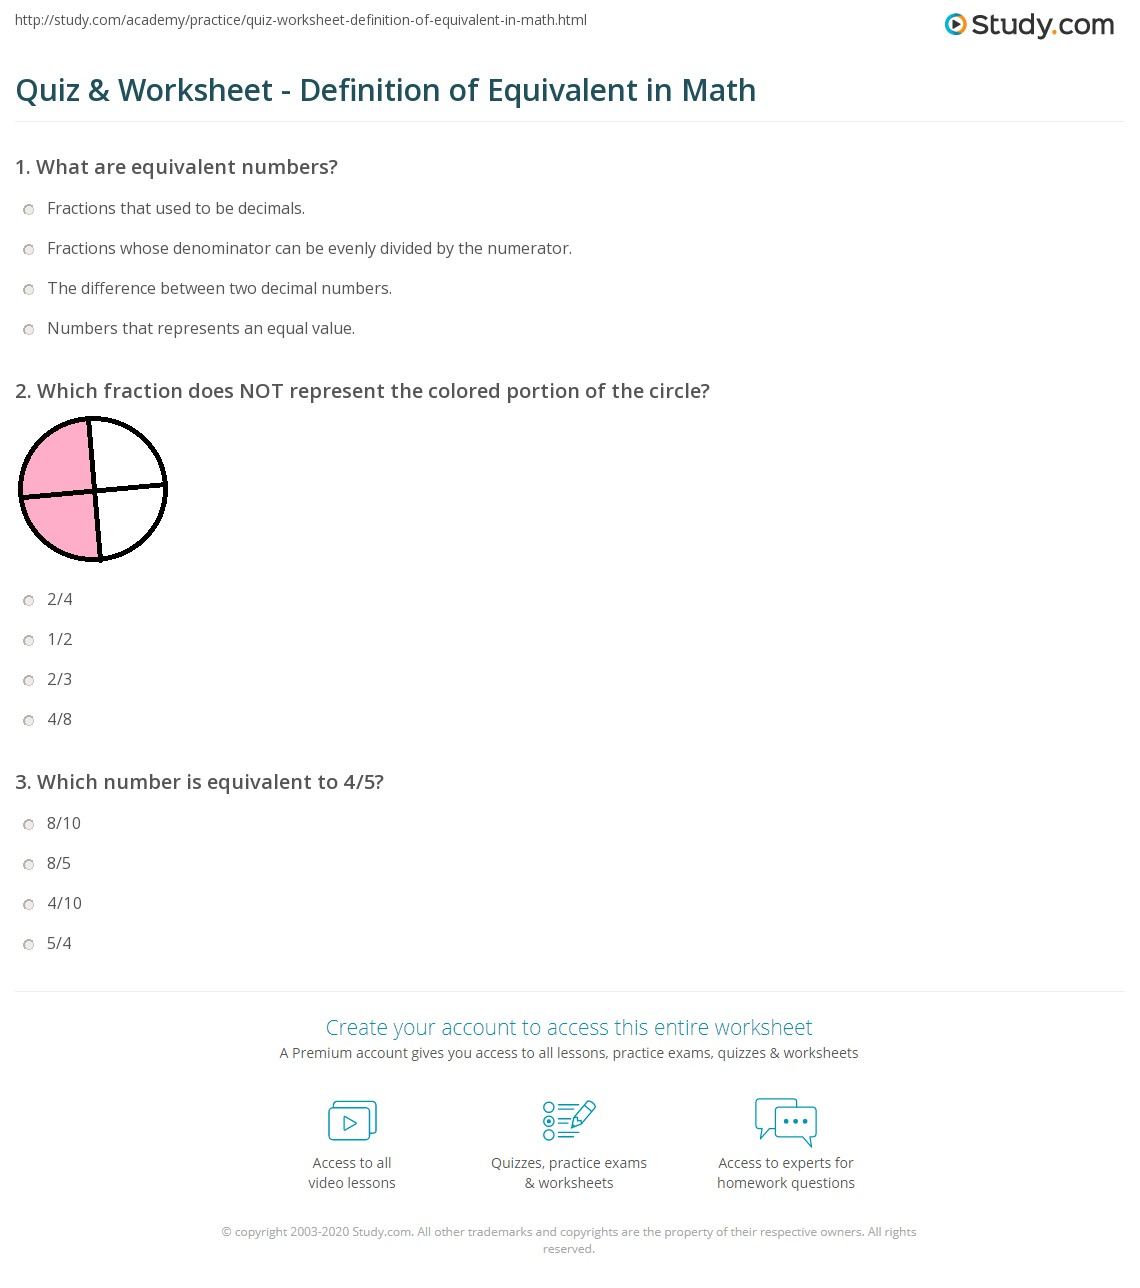 Quiz & Worksheet - Definition of Equivalent in Math   Study.com